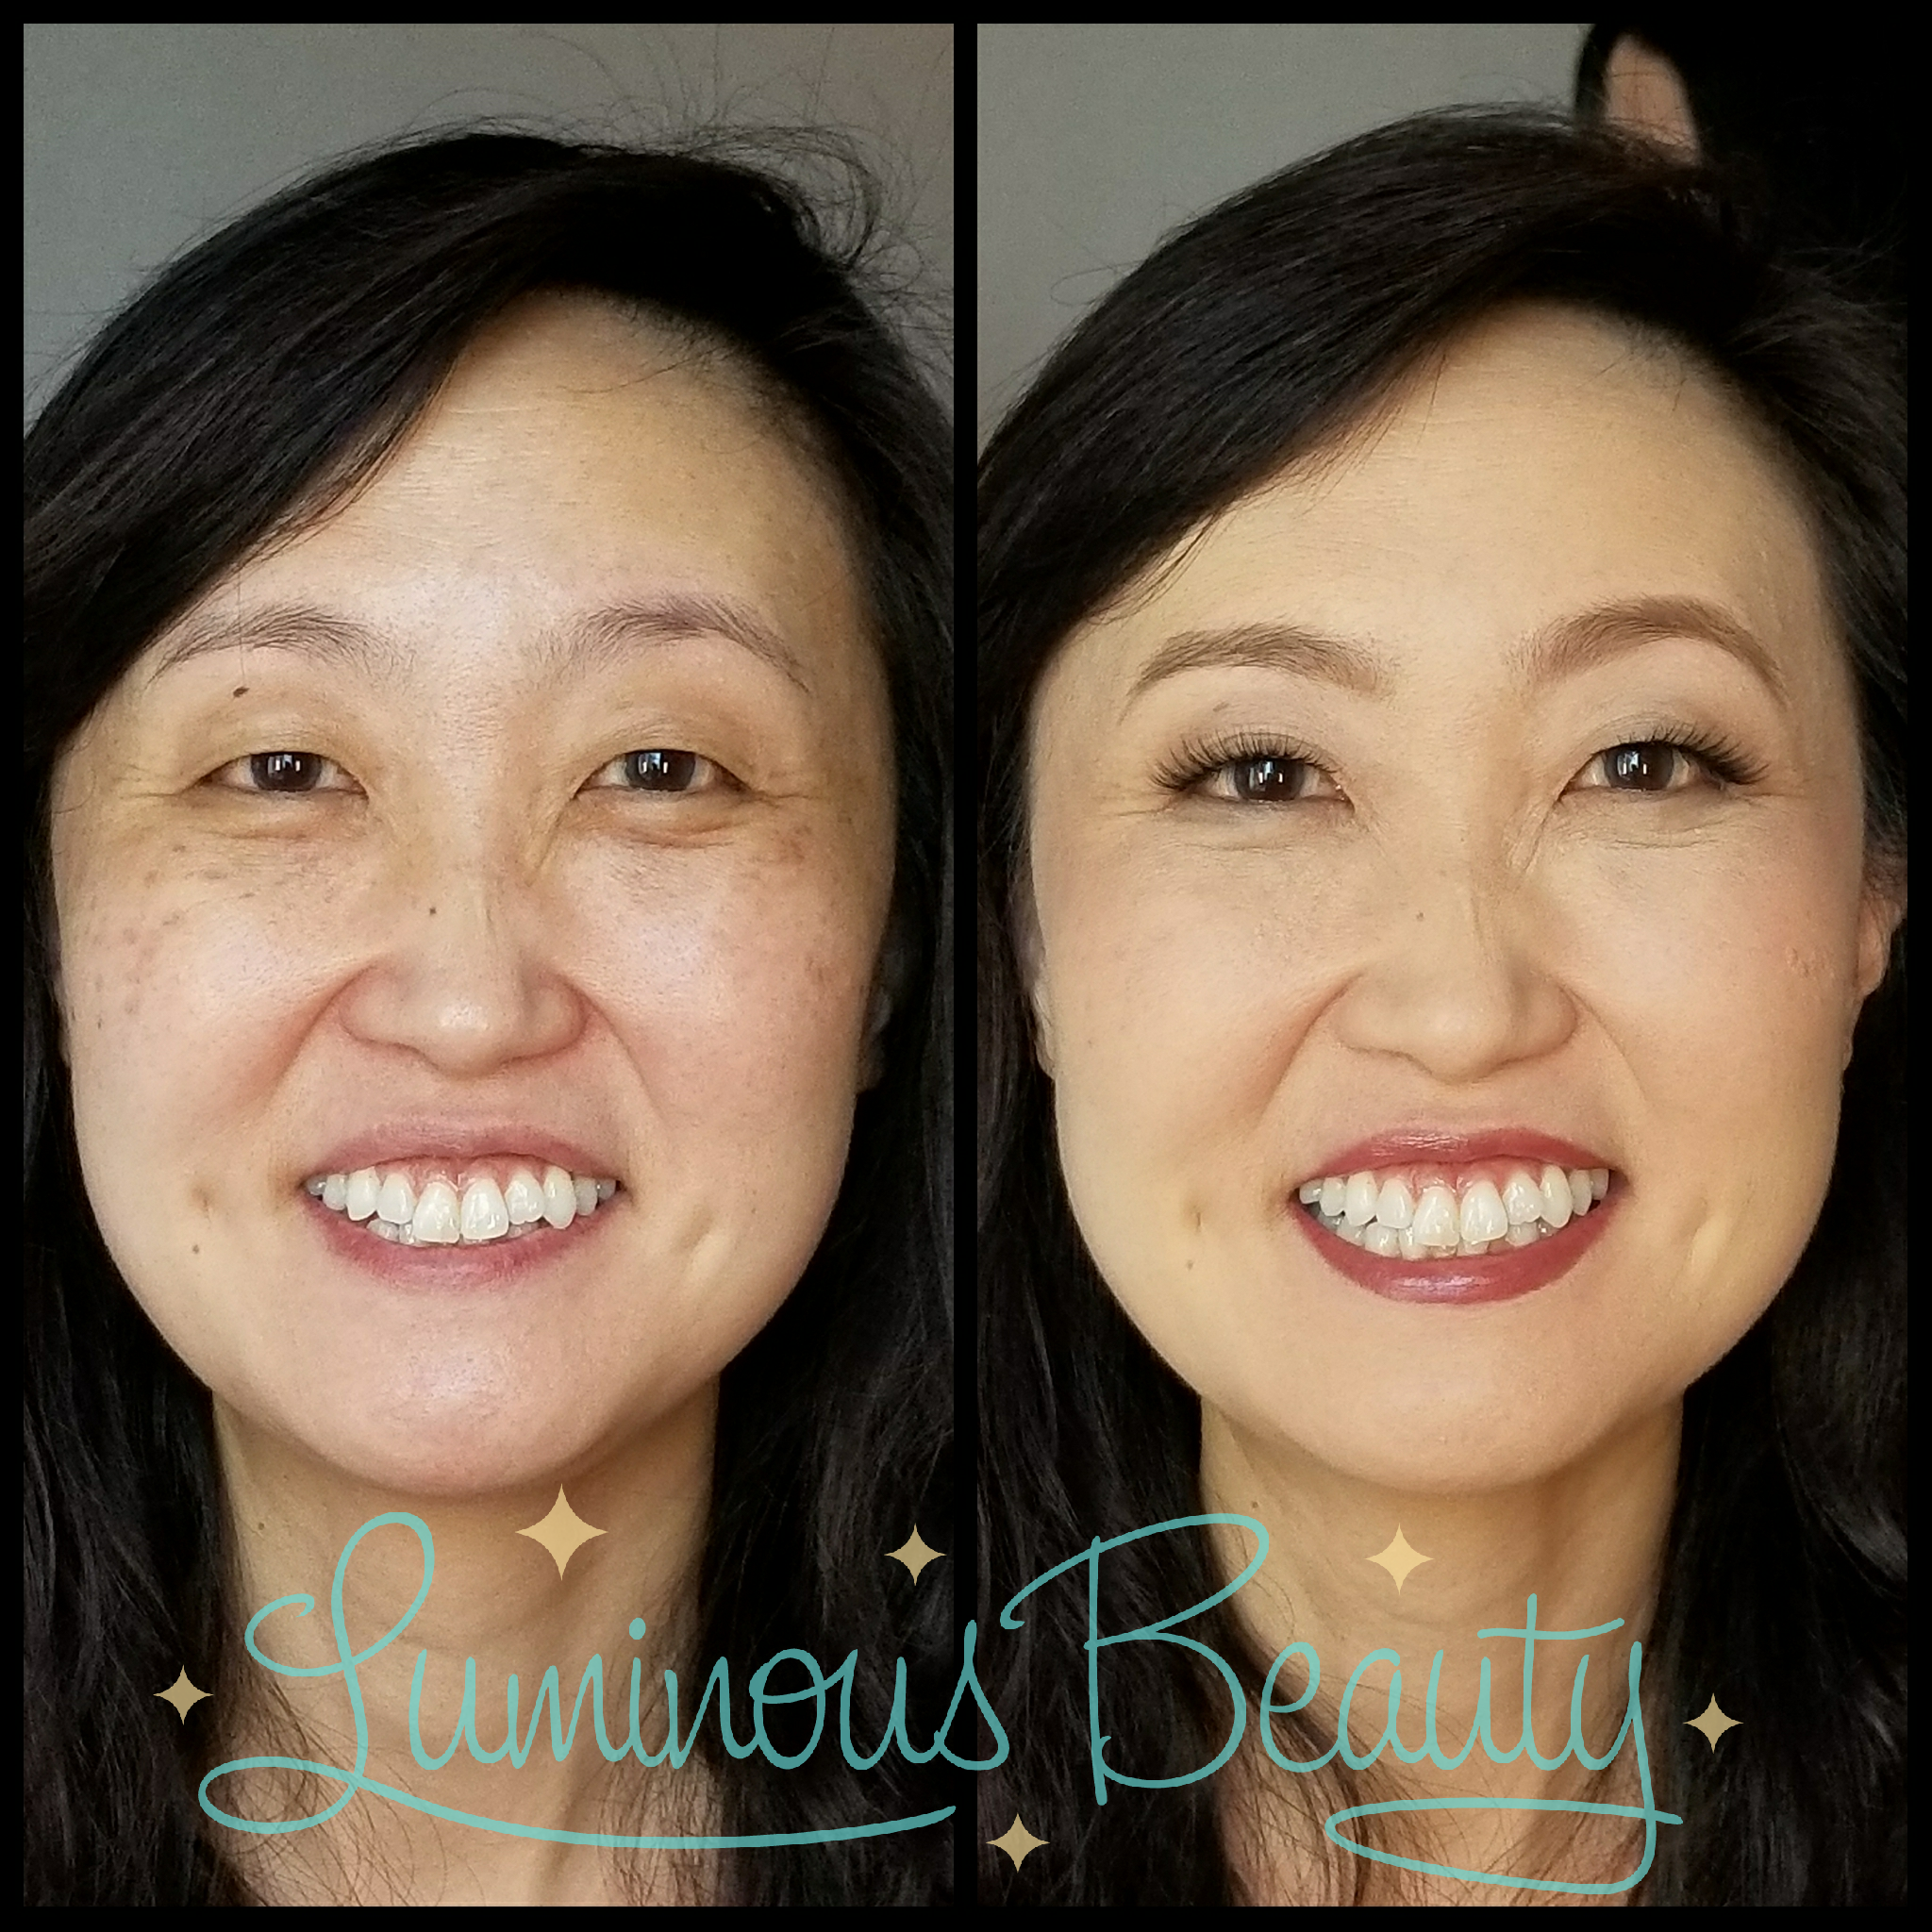 Extra Natural Wedding Attendant Makeup. Age Spot Covering. Airbrushed Makeup with Lashes. Luminous Beauty Makeup Artist..png